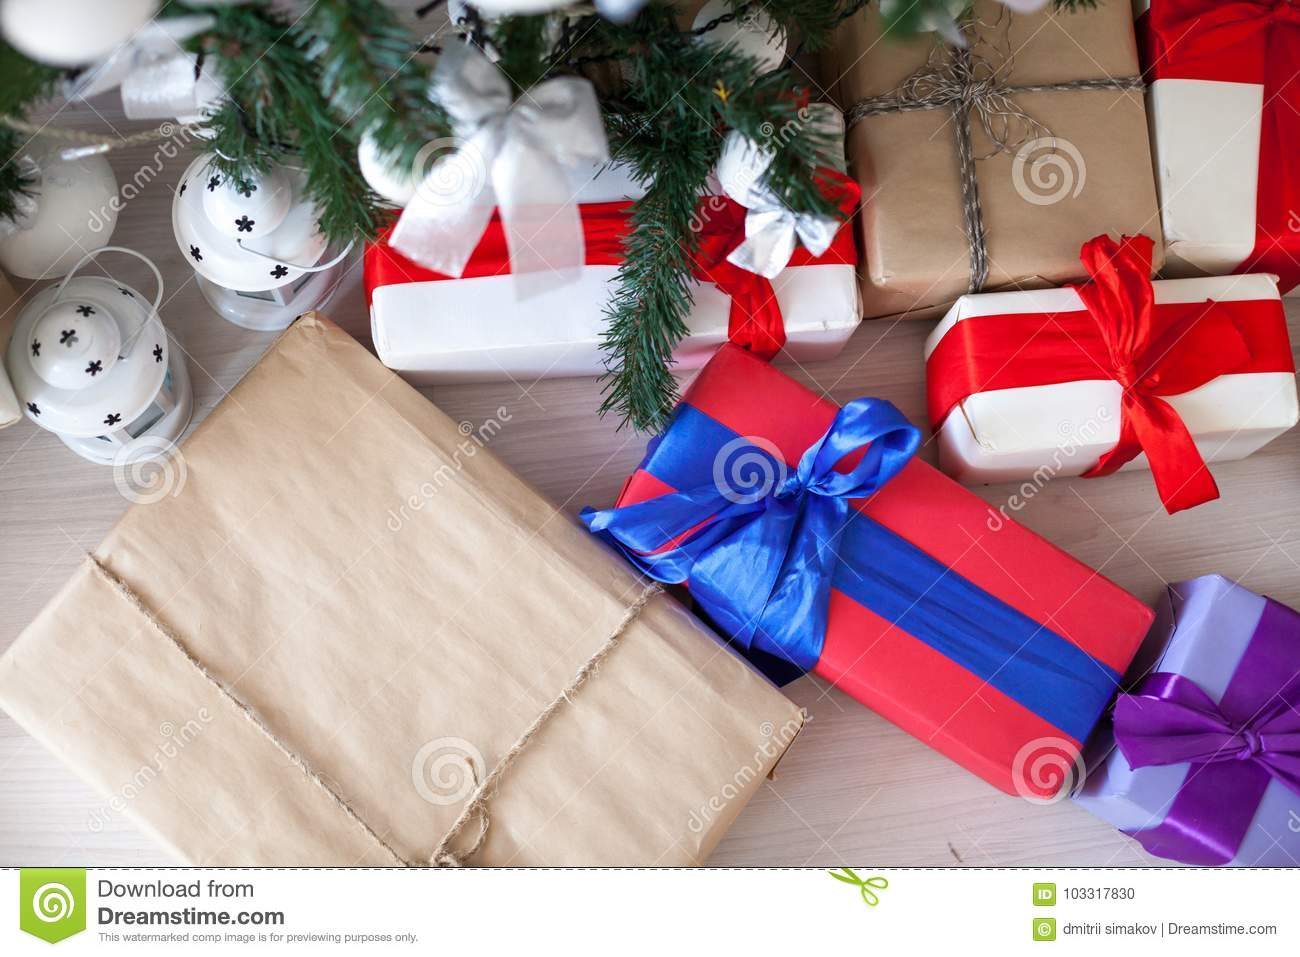 Christmas gifts for newly dating